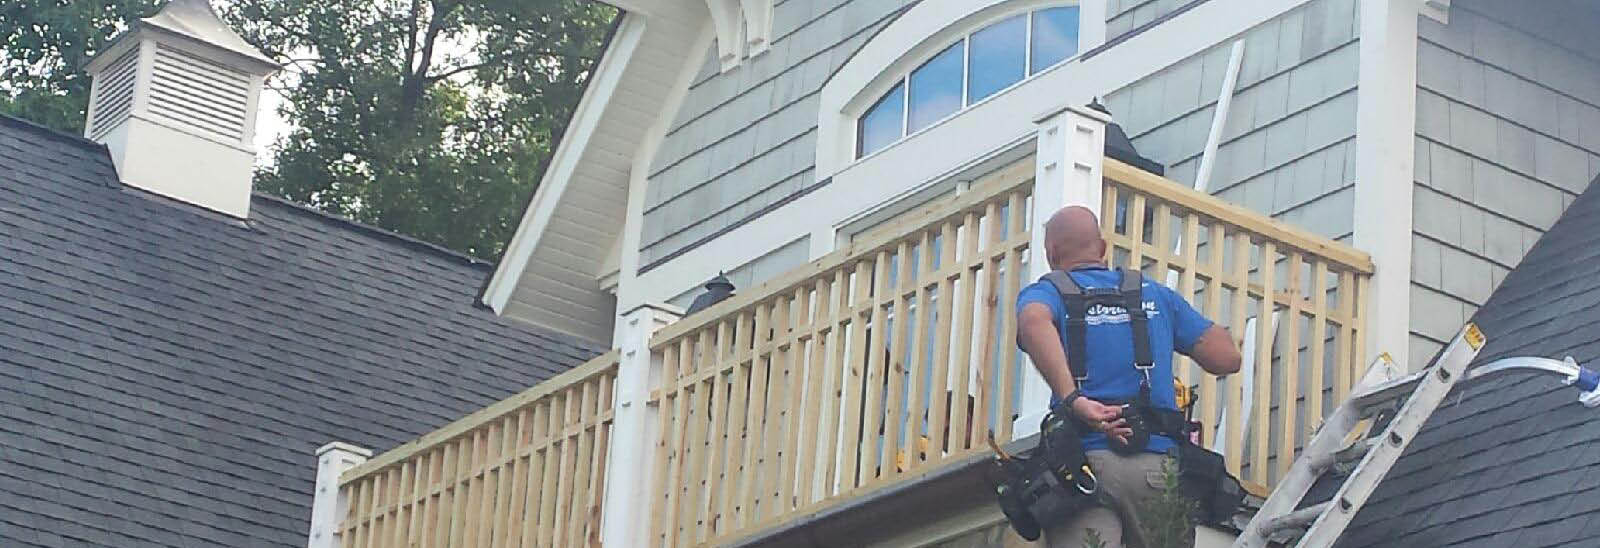 wood trim replacement, siding replacement, remodeling, locally-owned